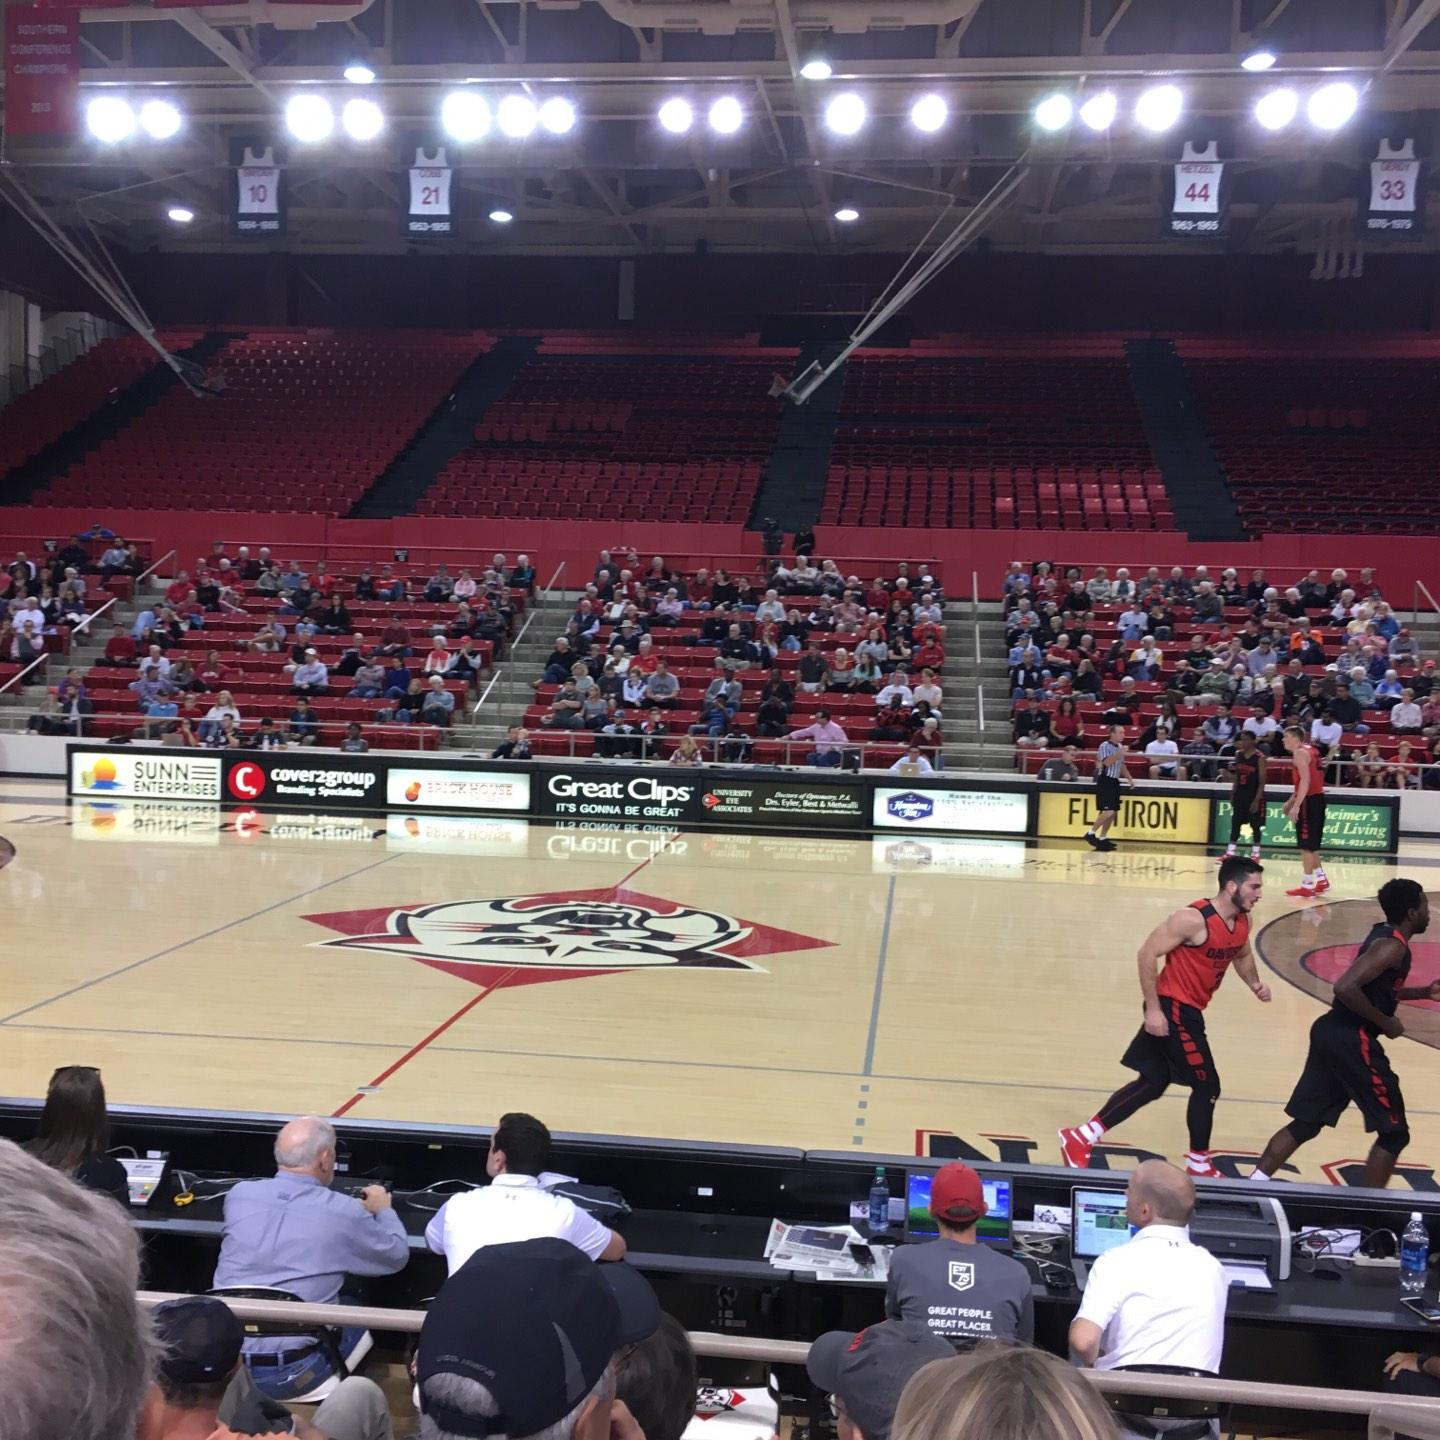 John M. Belk Arena Section 10 Row B Seat 1